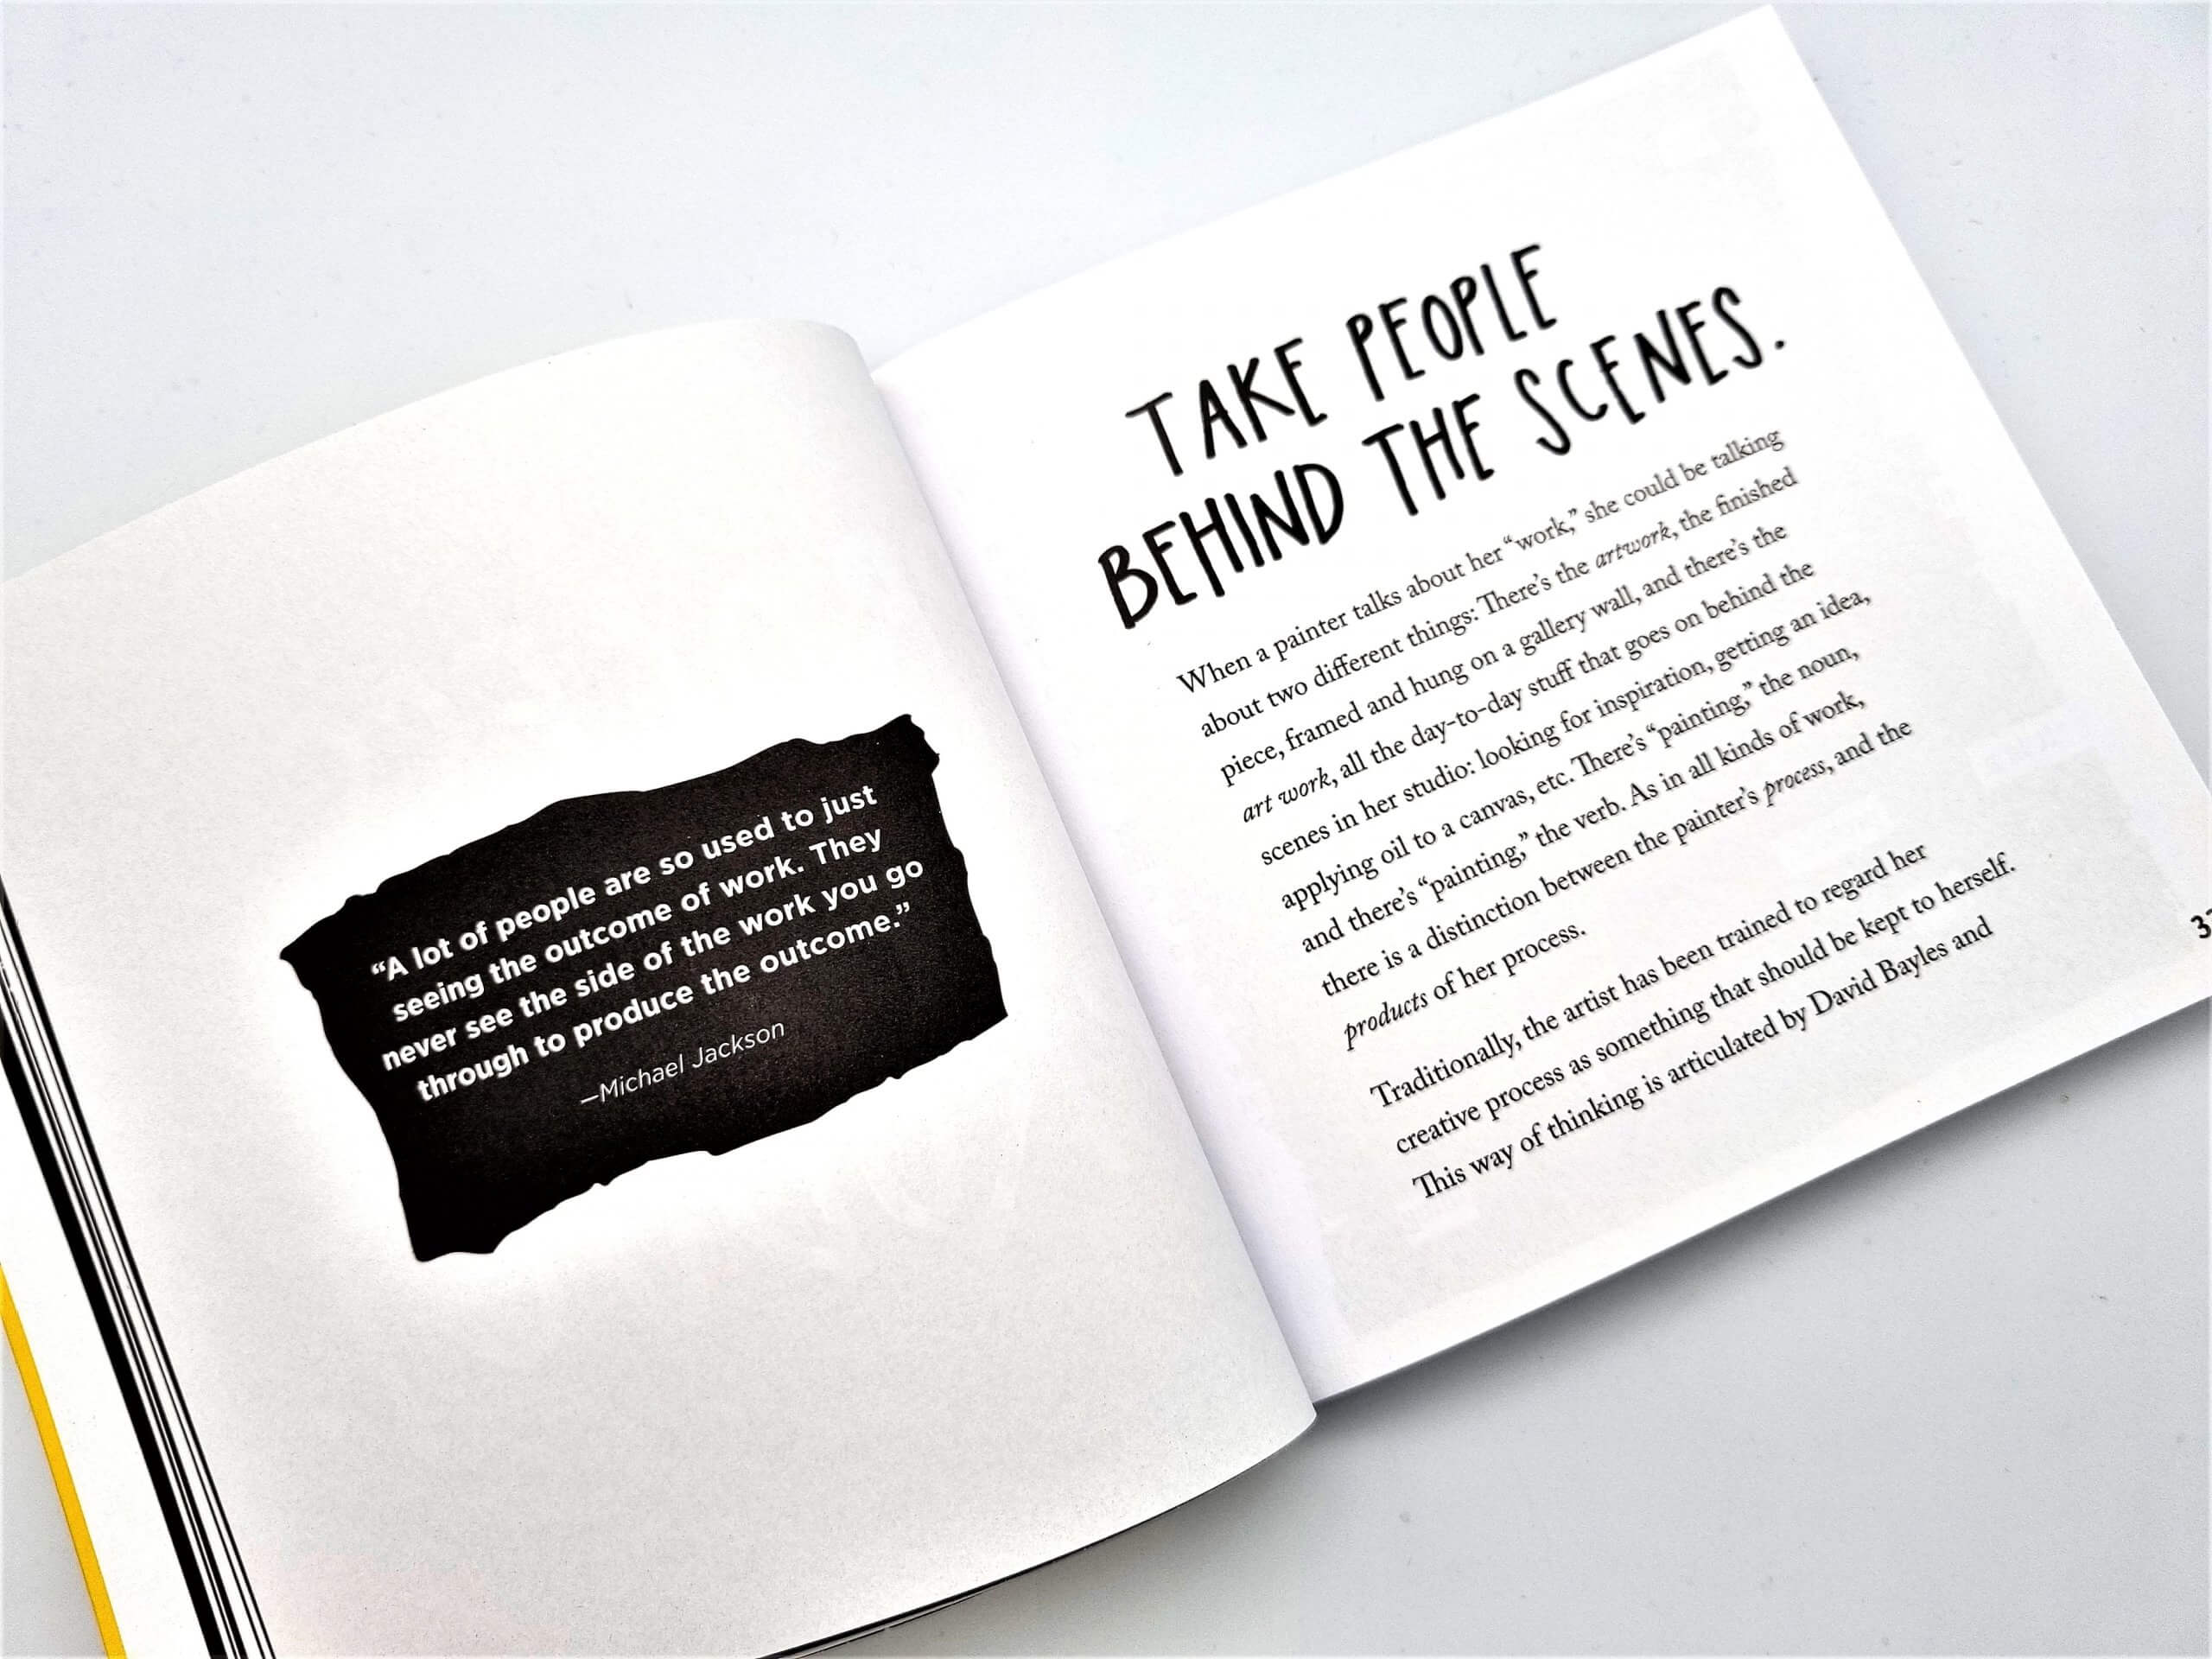 Show Your Work by Austin Kleon - Book Review - The Logo Creative (5)